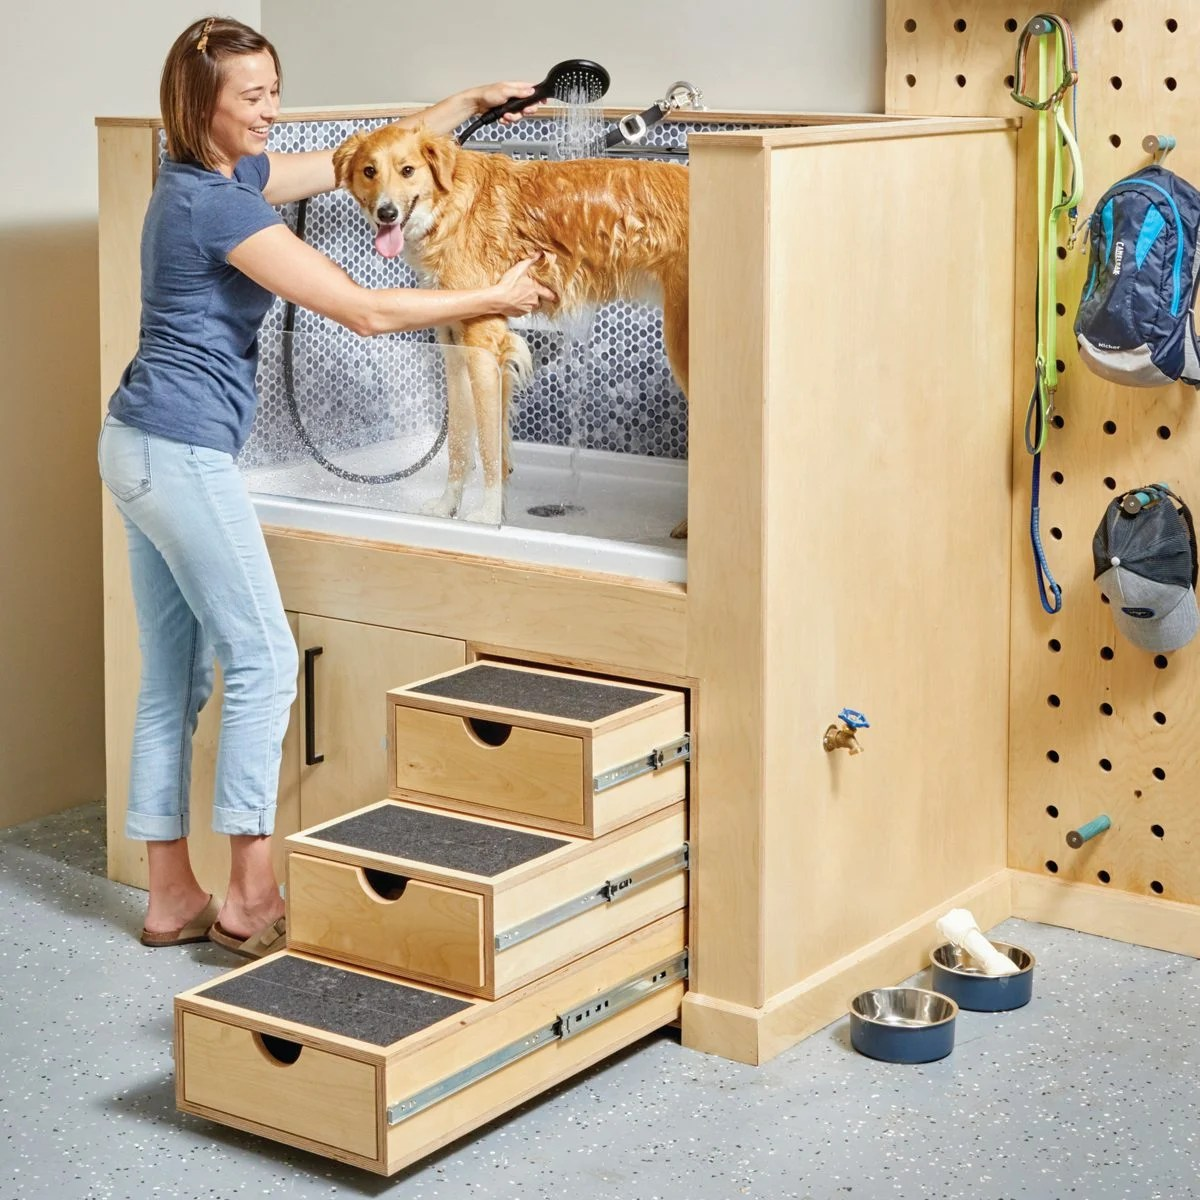 how to build a dog washing station diy